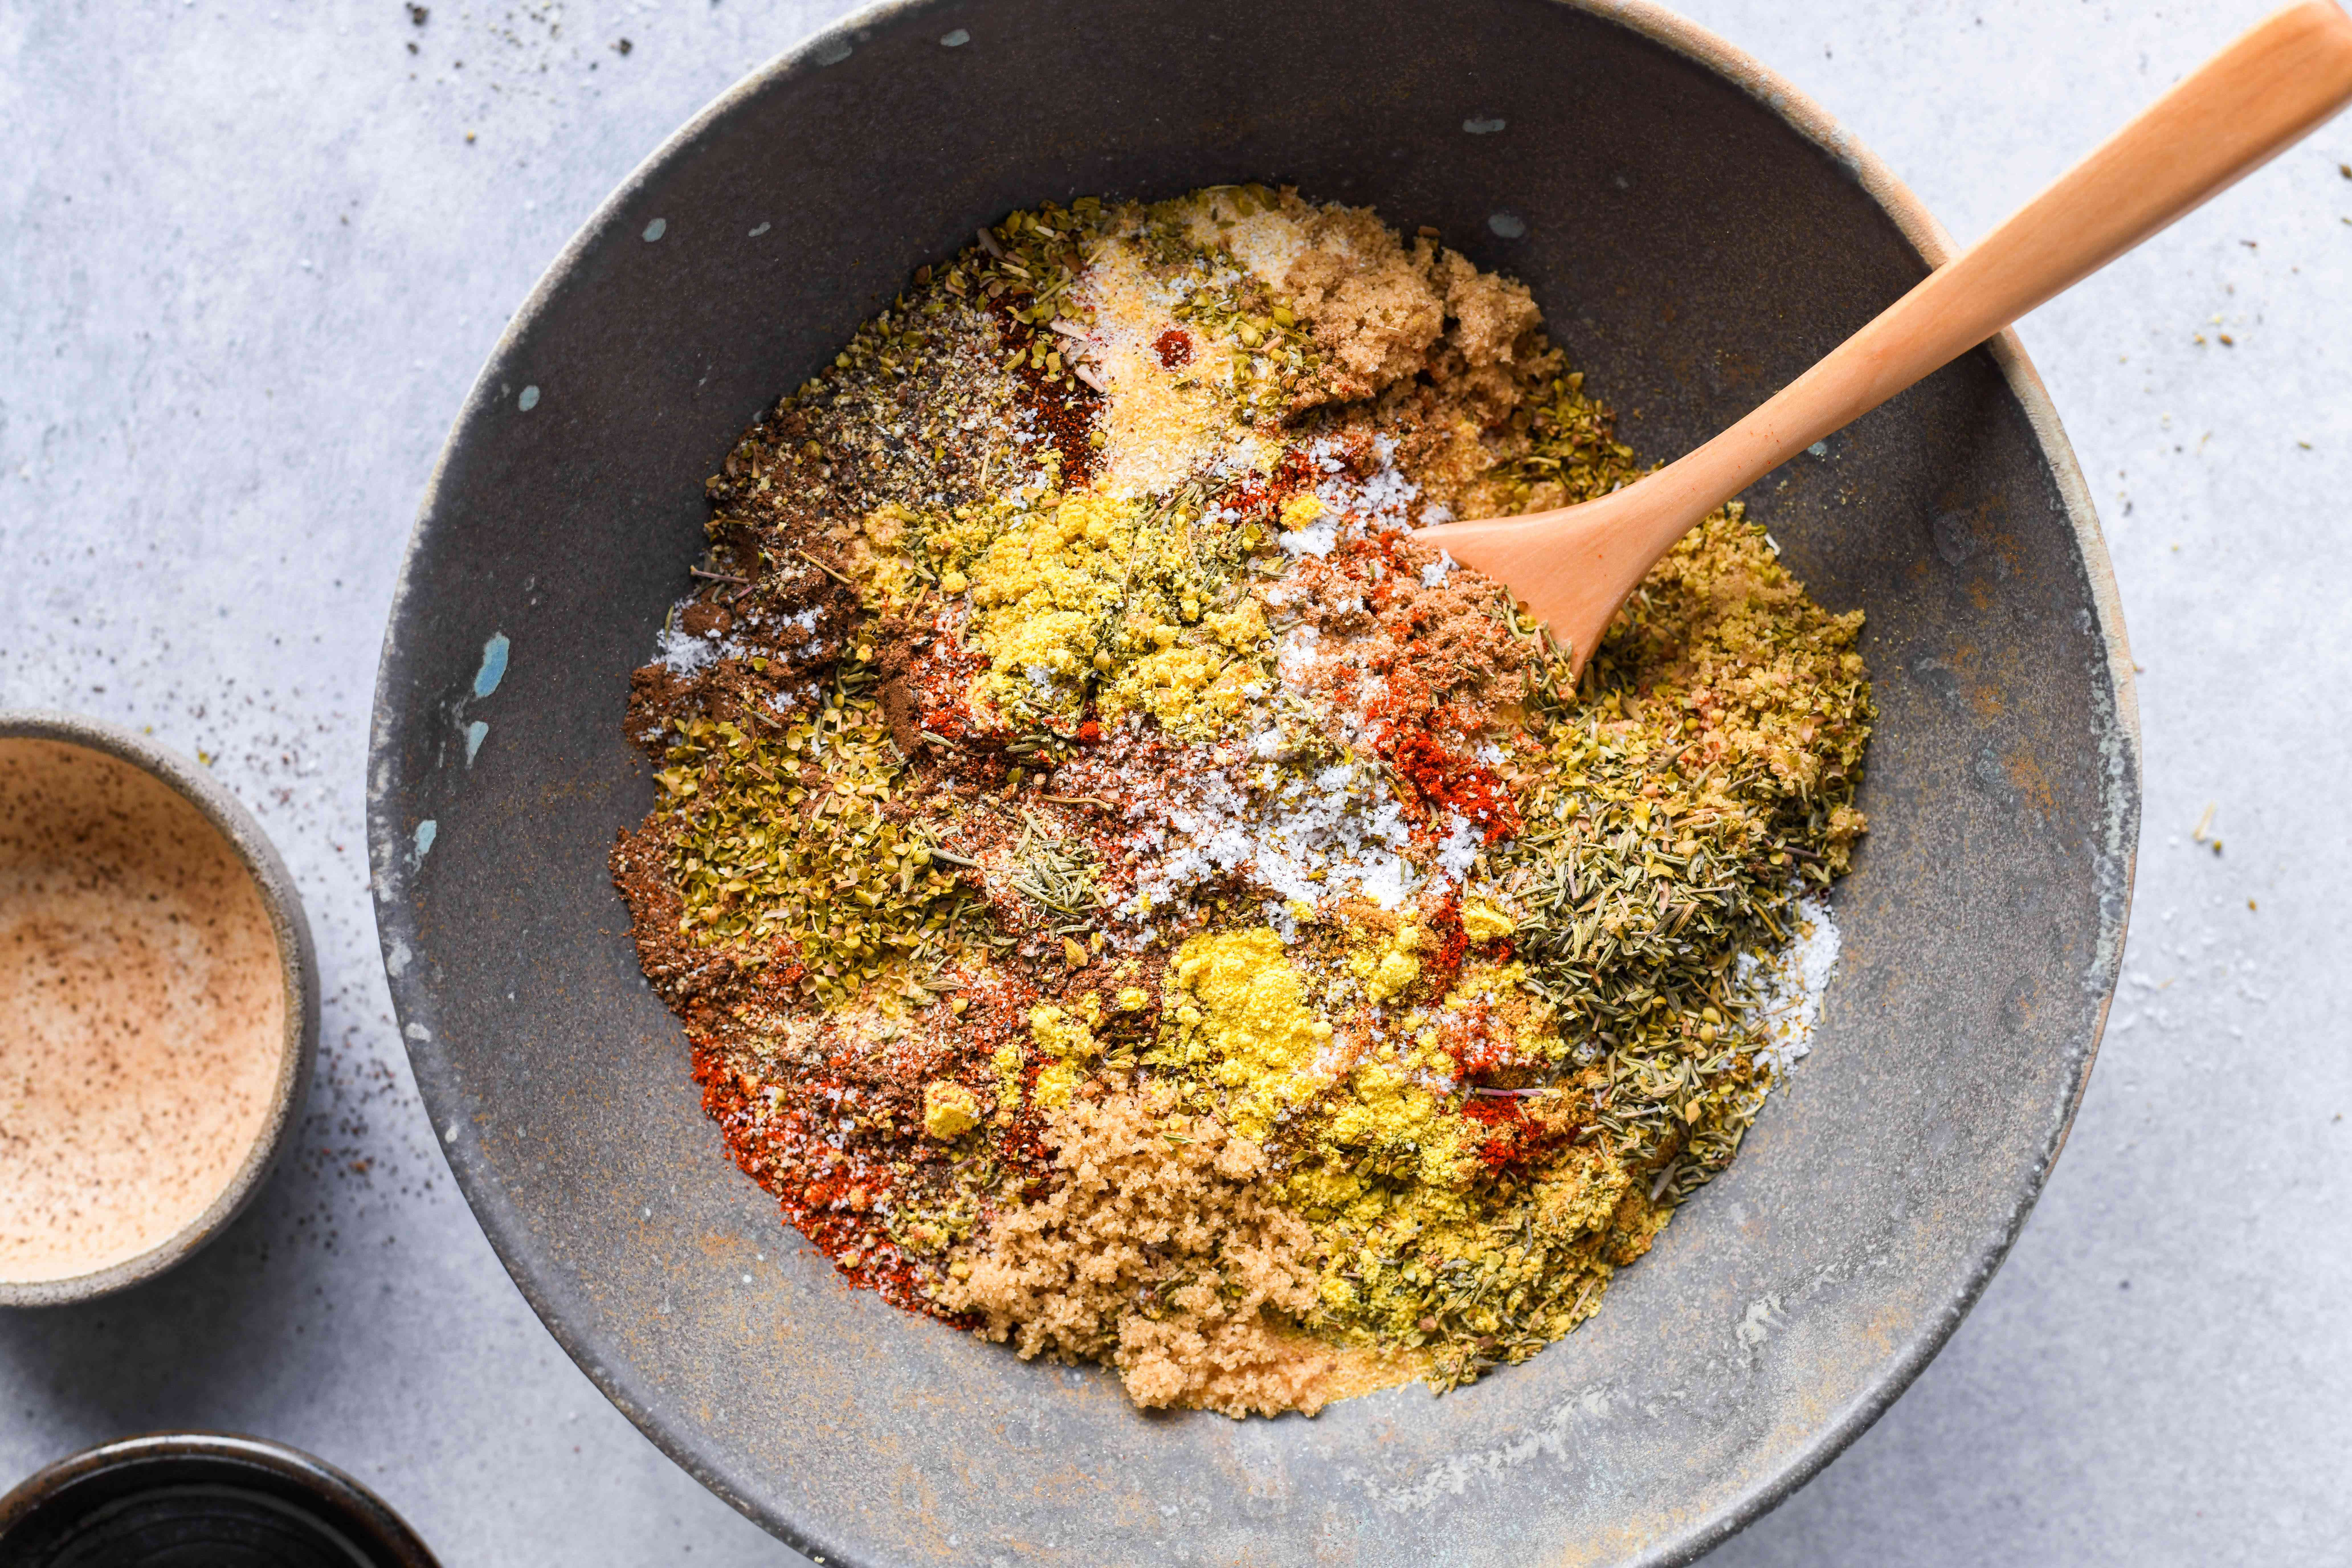 Mix the Mouthwatering Memphis Rub ingredients together